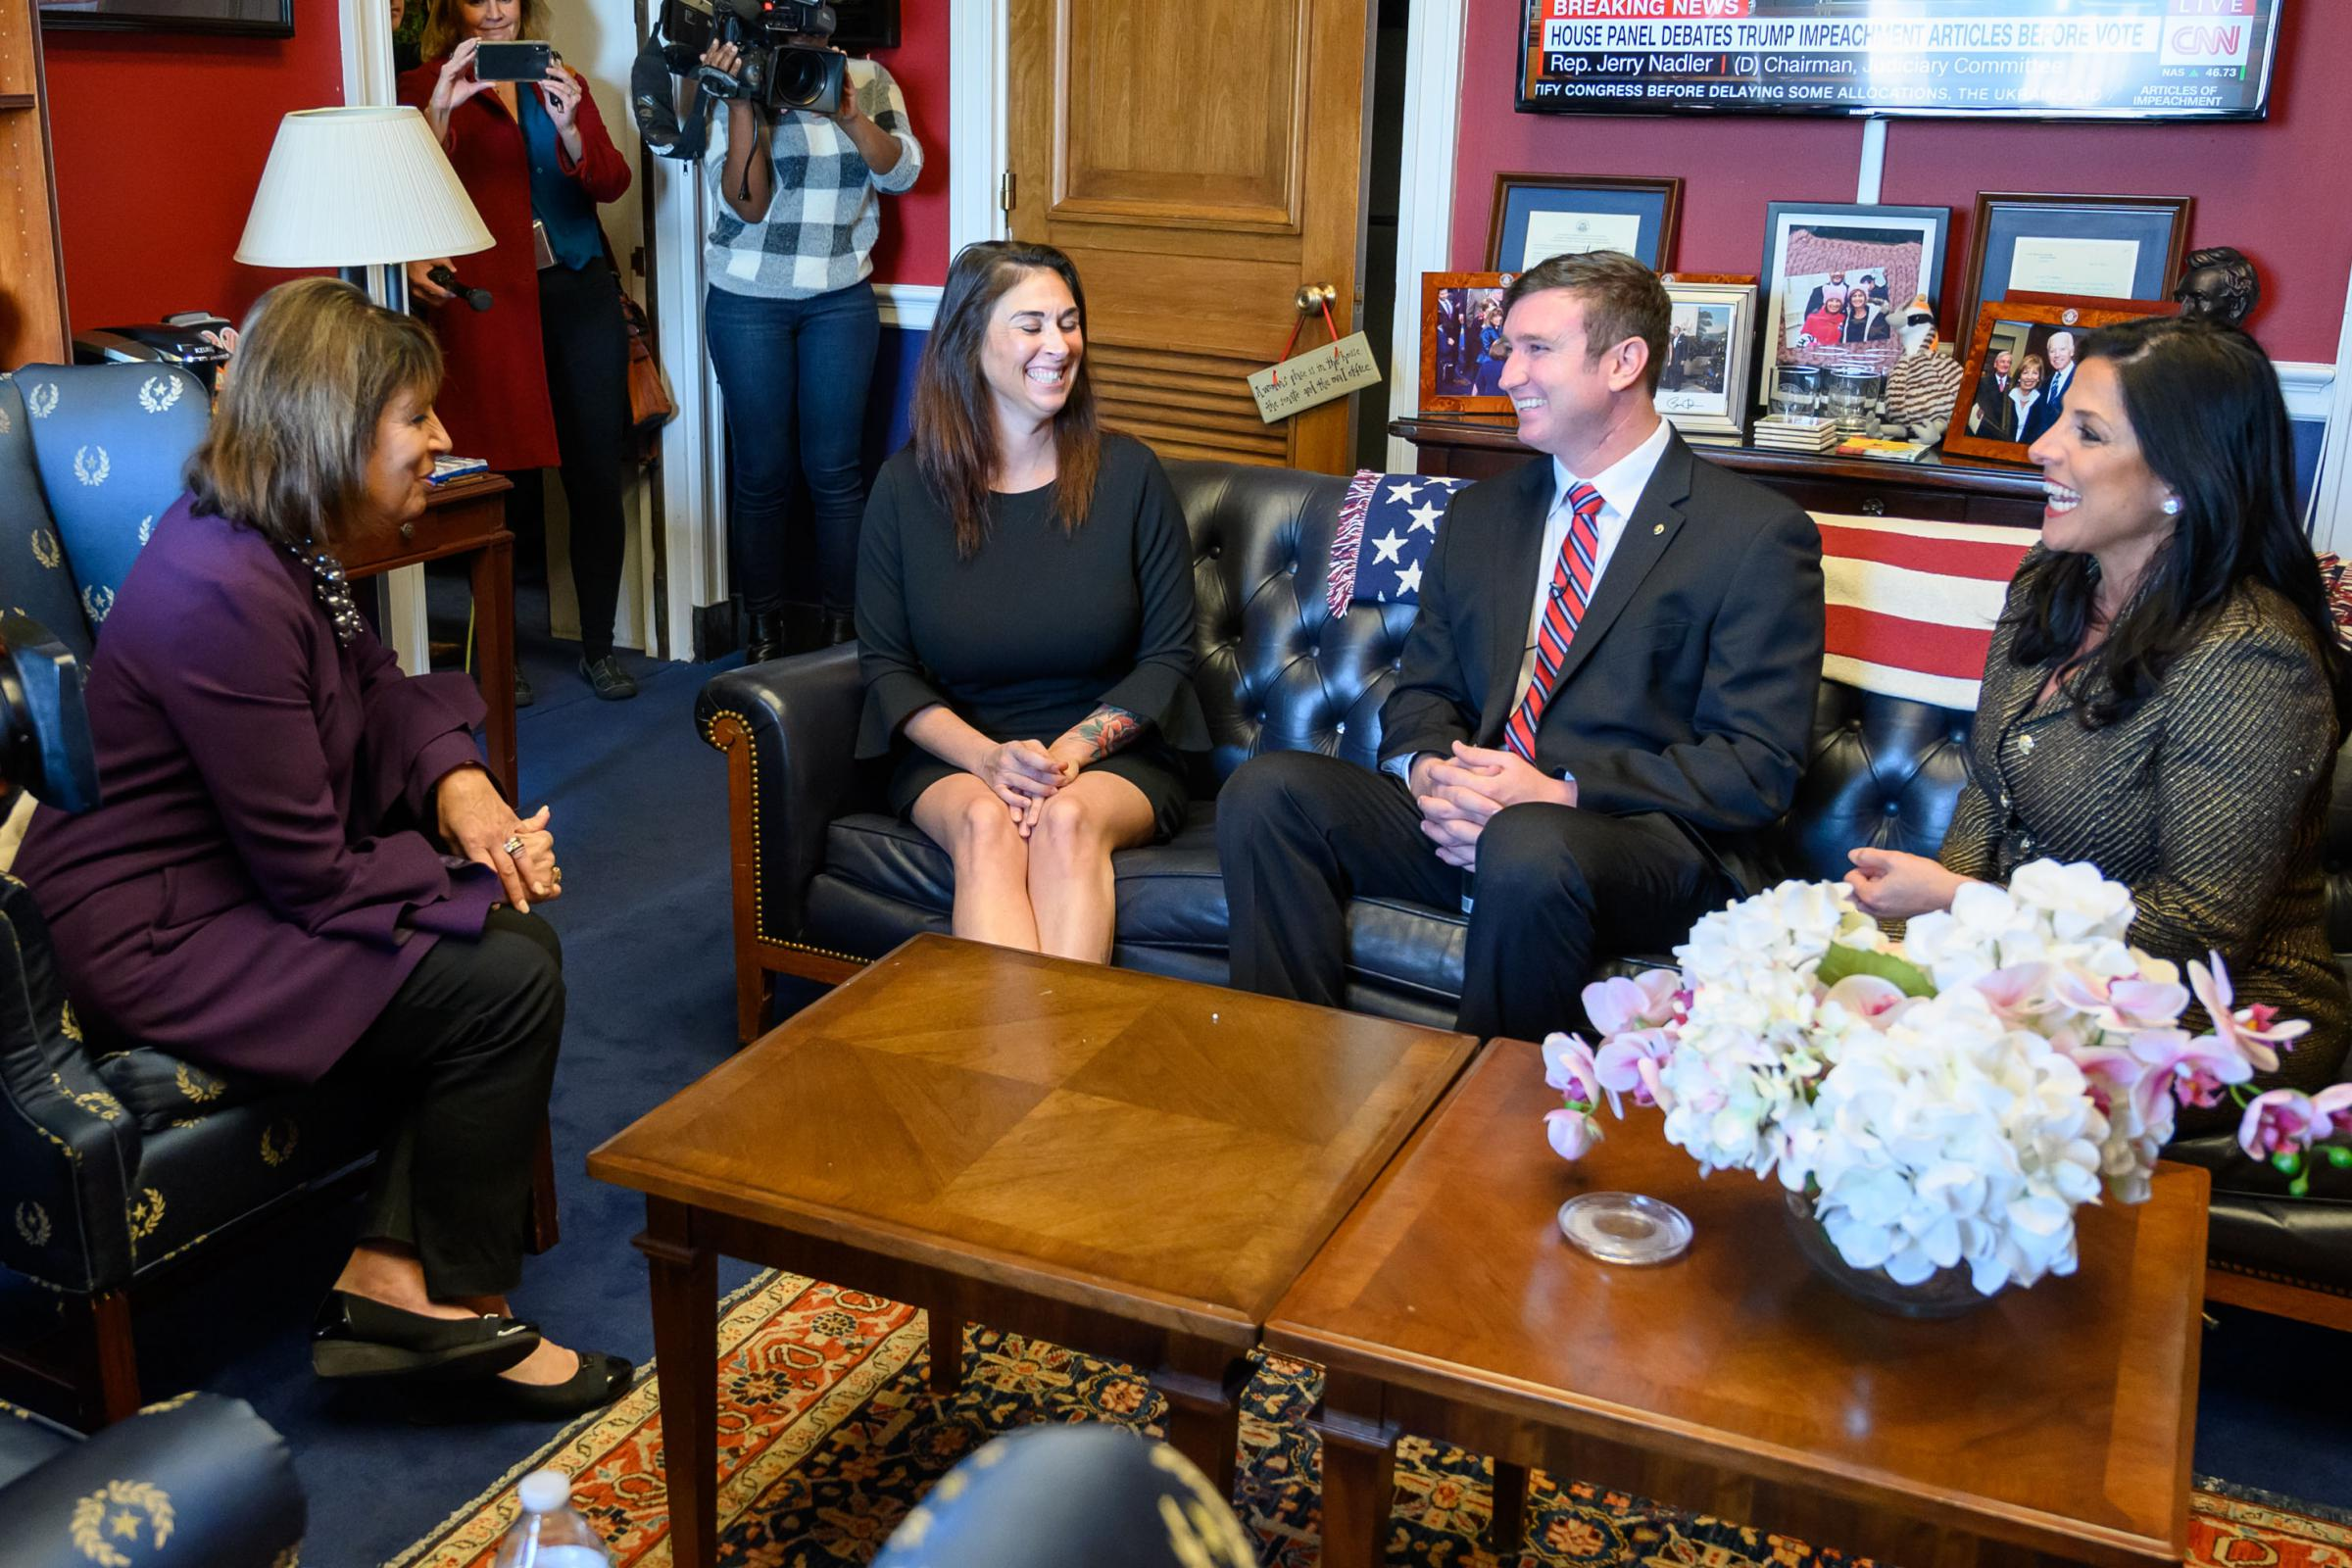 Congresswoman Jackie Speier, left, meets with Army Sergeant Richard Stayskal, center, his wife, Megan, and his attorney, Natalie Khawam, in Speier's Washington office before an April 2019 subcommittee hearing on the Feres Doctrine.